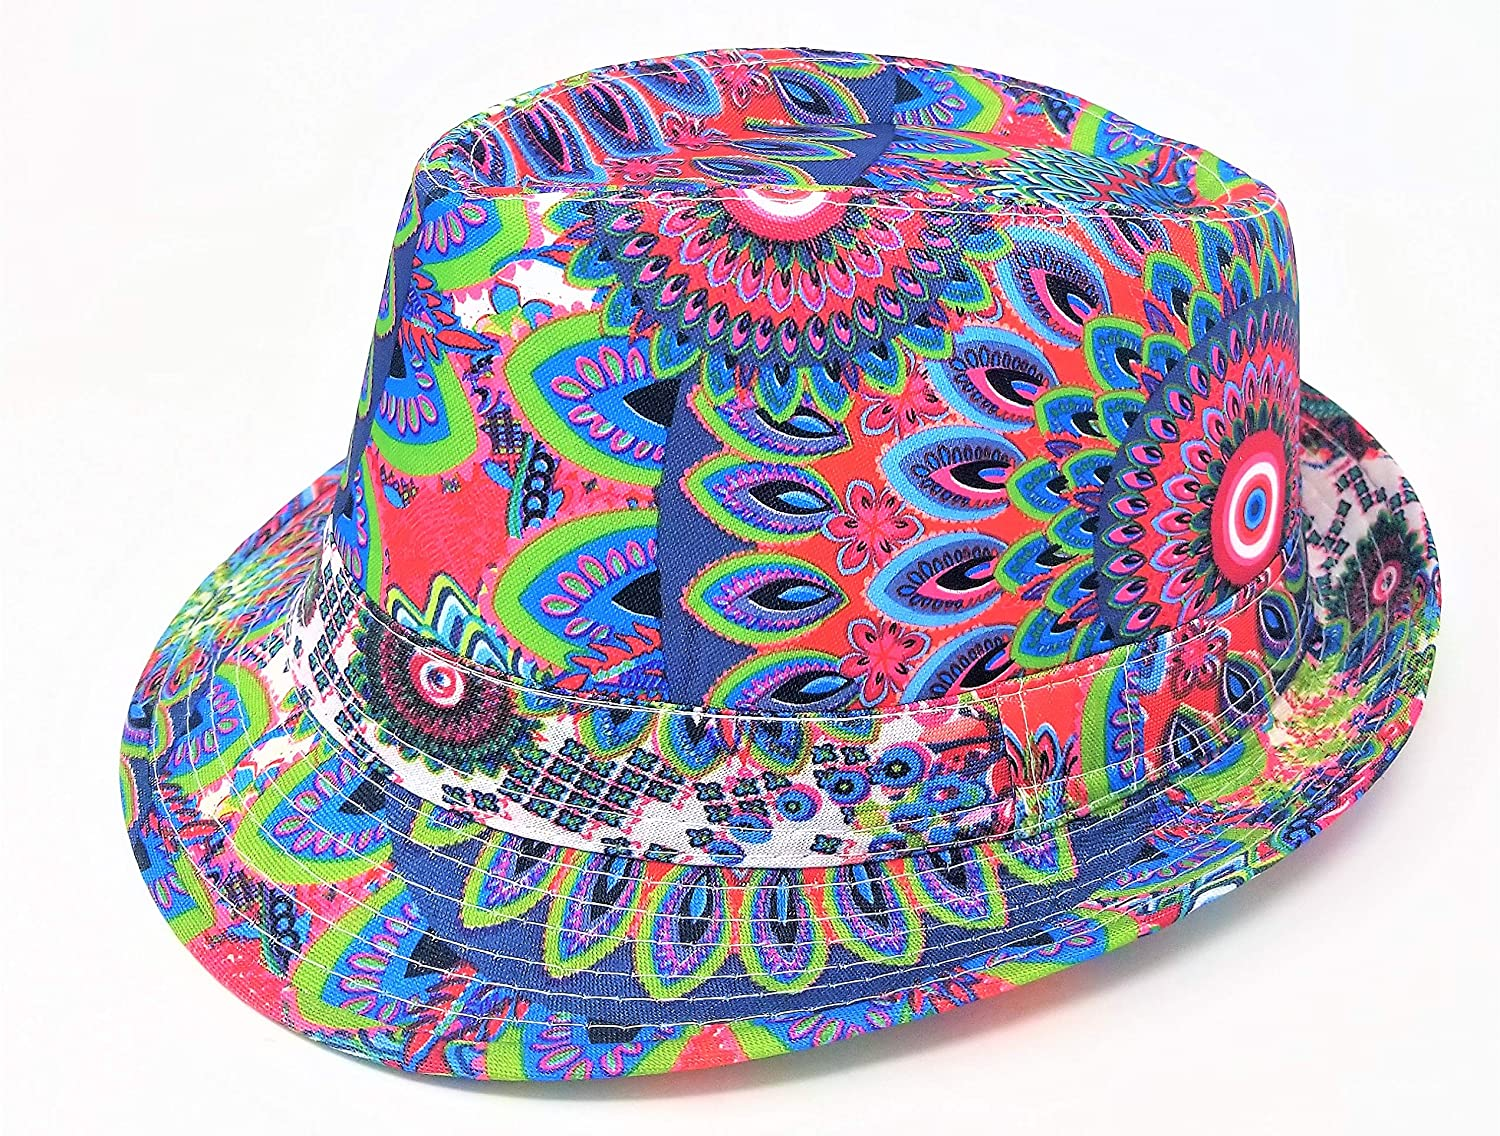 trippy psychedelic Unisex Comfortable Lightweight Fedora Hat, for Parties, Fashion, Fun Events and More